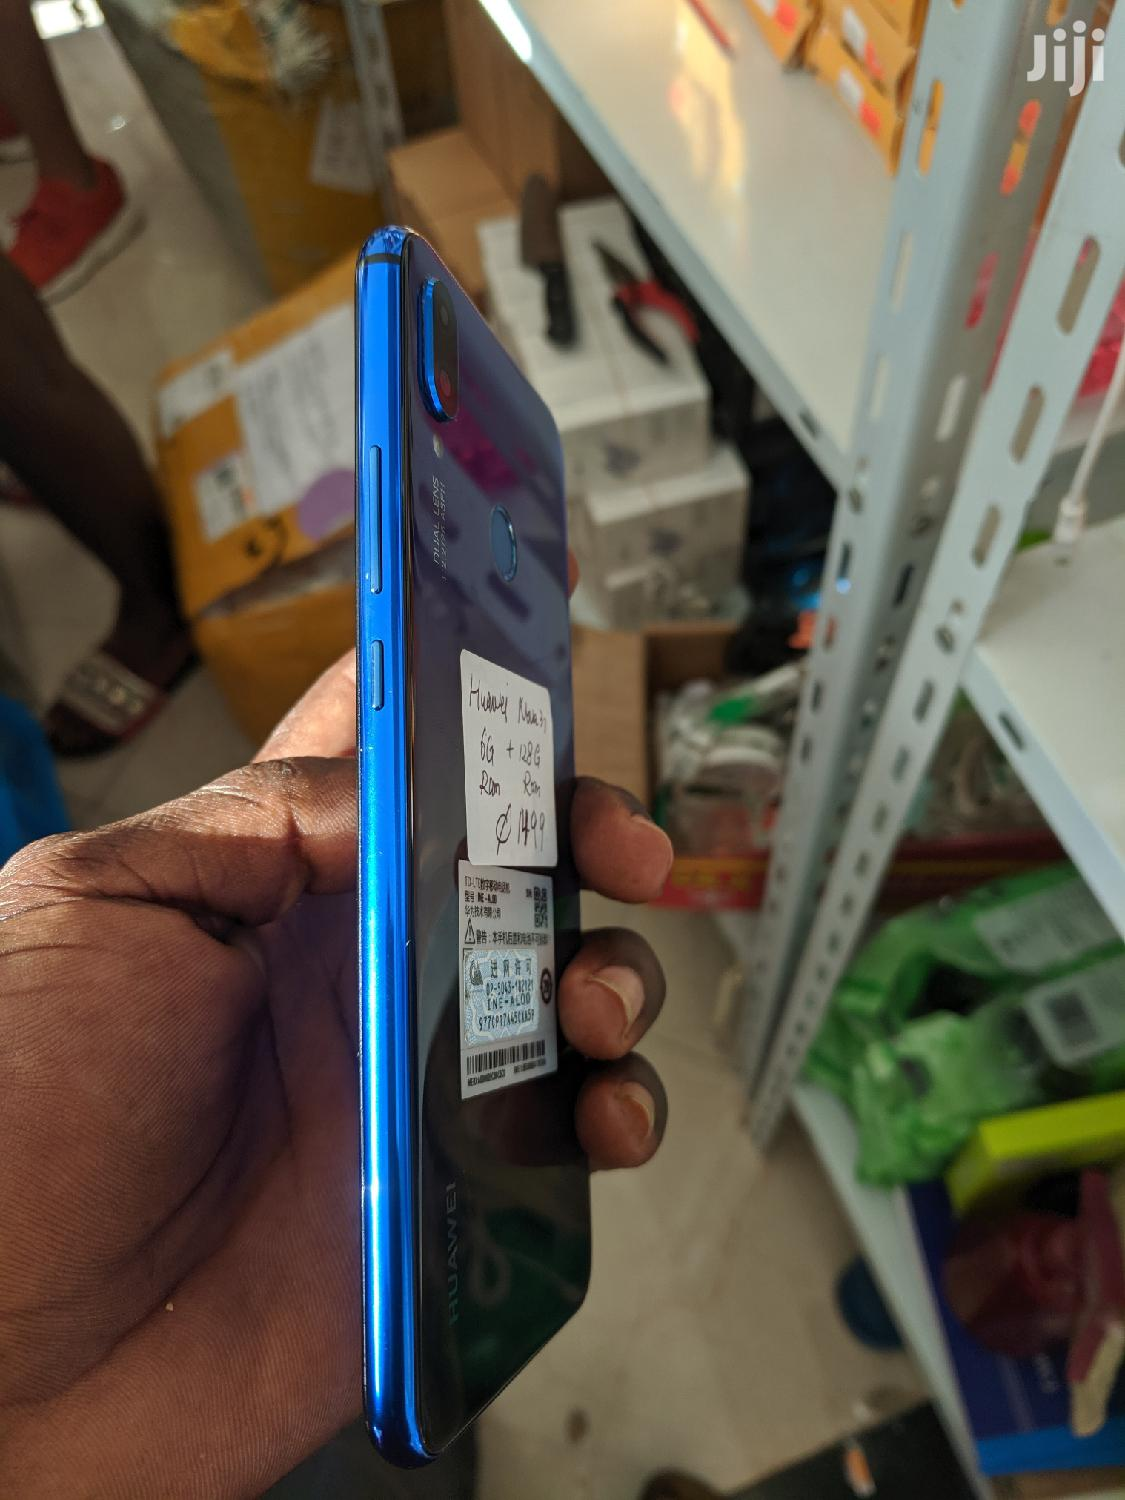 Huawei Nova 3i 128 GB Blue | Mobile Phones for sale in Accra Metropolitan, Greater Accra, Ghana